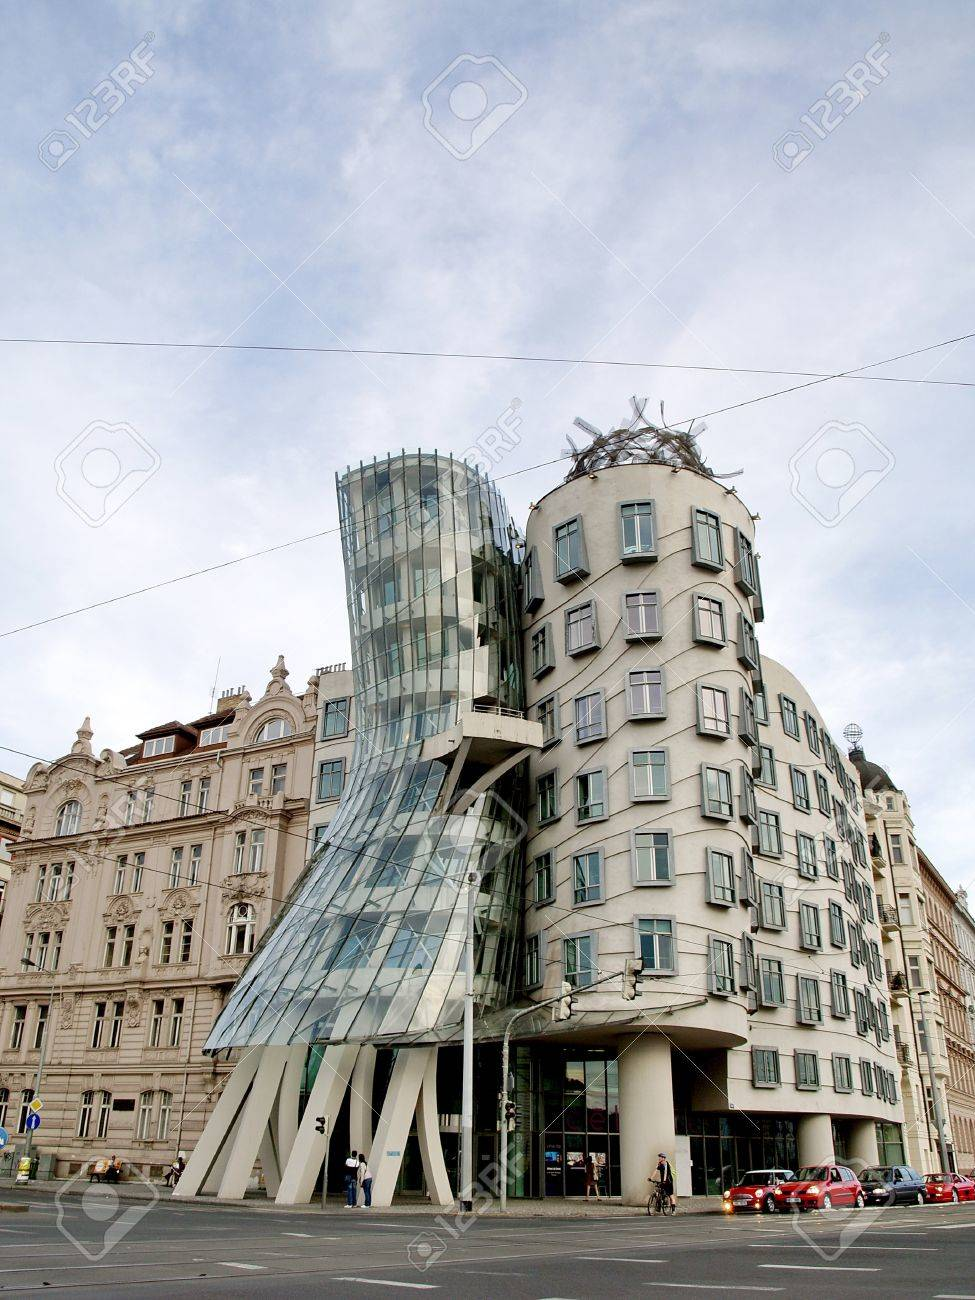 gehry tower images stock pictures royalty free gehry tower gehry tower prague april 29 the dancing house in the center of prague seen